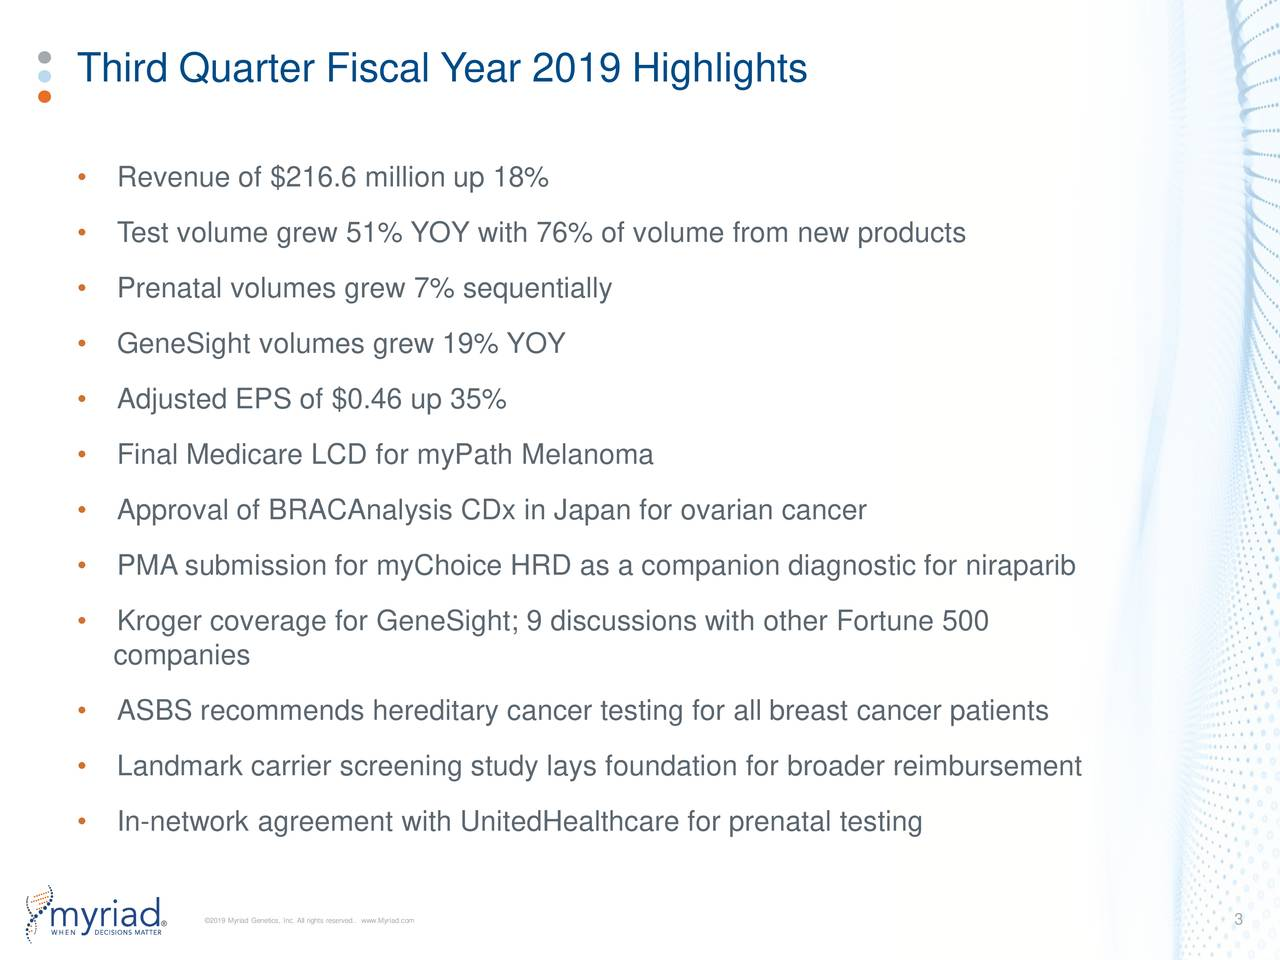 • Revenue of $216.6 million up 18% • Test volume grew 51% YOY with 76% of volume from new products • Prenatal volumes grew 7% sequentially • GeneSight volumes grew 19% YOY • Adjusted EPS of $0.46 up 35% • Final Medicare LCD for myPath Melanoma • Approval of BRACAnalysis CDx in Japan for ovarian cancer • PMA submission for myChoice HRD as a companion diagnostic for niraparib • Kroger coverage for GeneSight; 9 discussions with other Fortune 500 companies • ASBS recommends hereditary cancer testing for all breast cancer patients • Landmark carrier screening study lays foundation for broader reimbursement • In-network agreement with UnitedHealthcare for prenatal testing ©2019 Myriad Genetics, Inc. All rights reserved.. www.Myriad.com 3